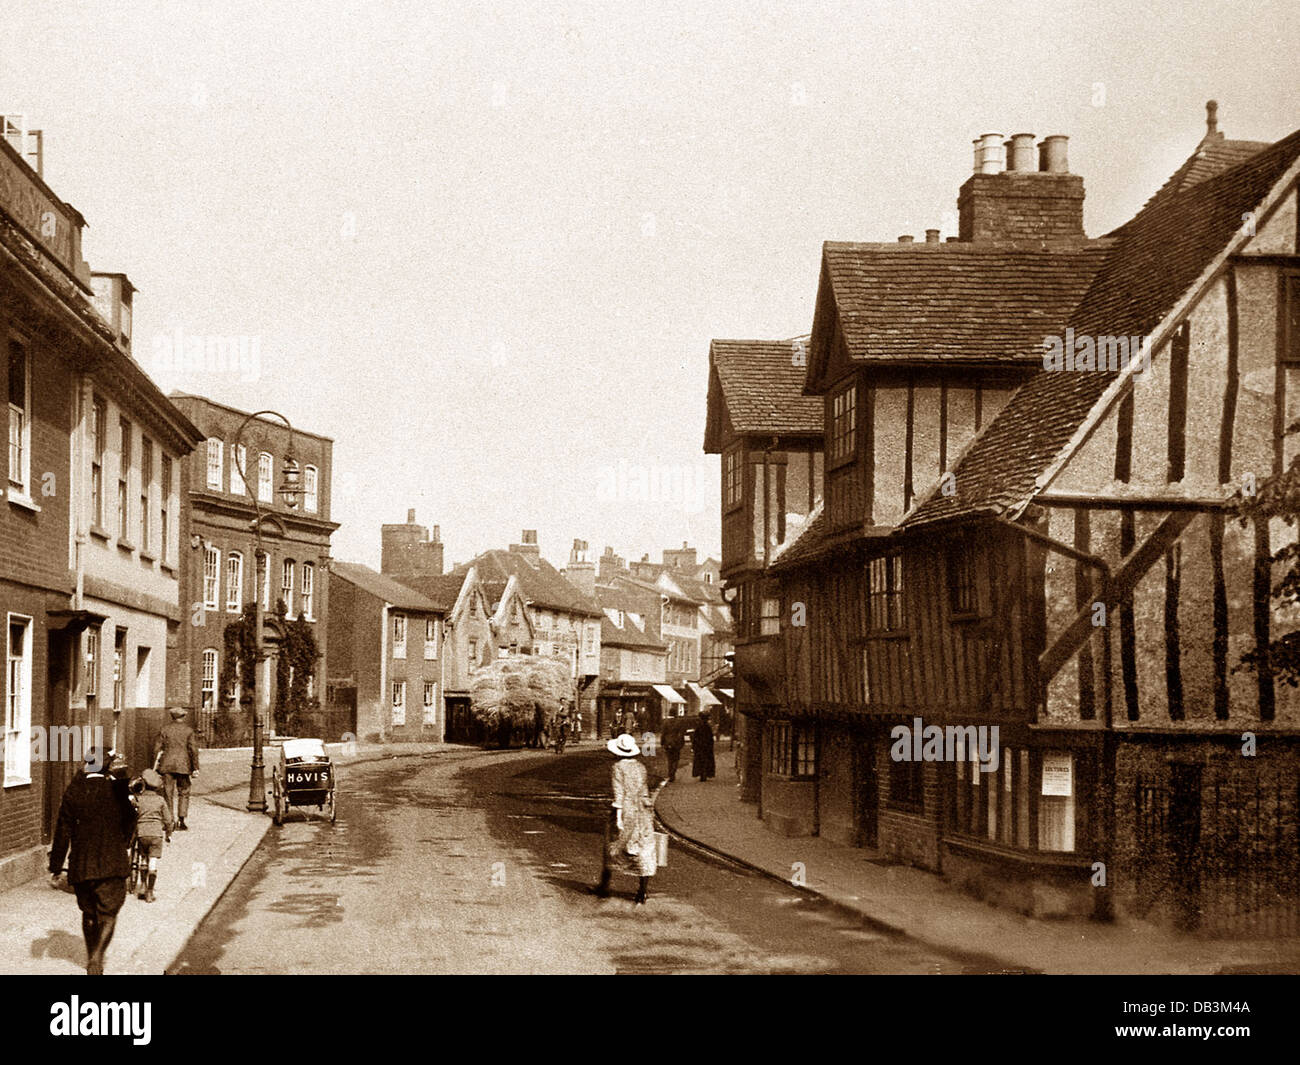 Hertford St. Andrew's Street early 1900s - Stock Image